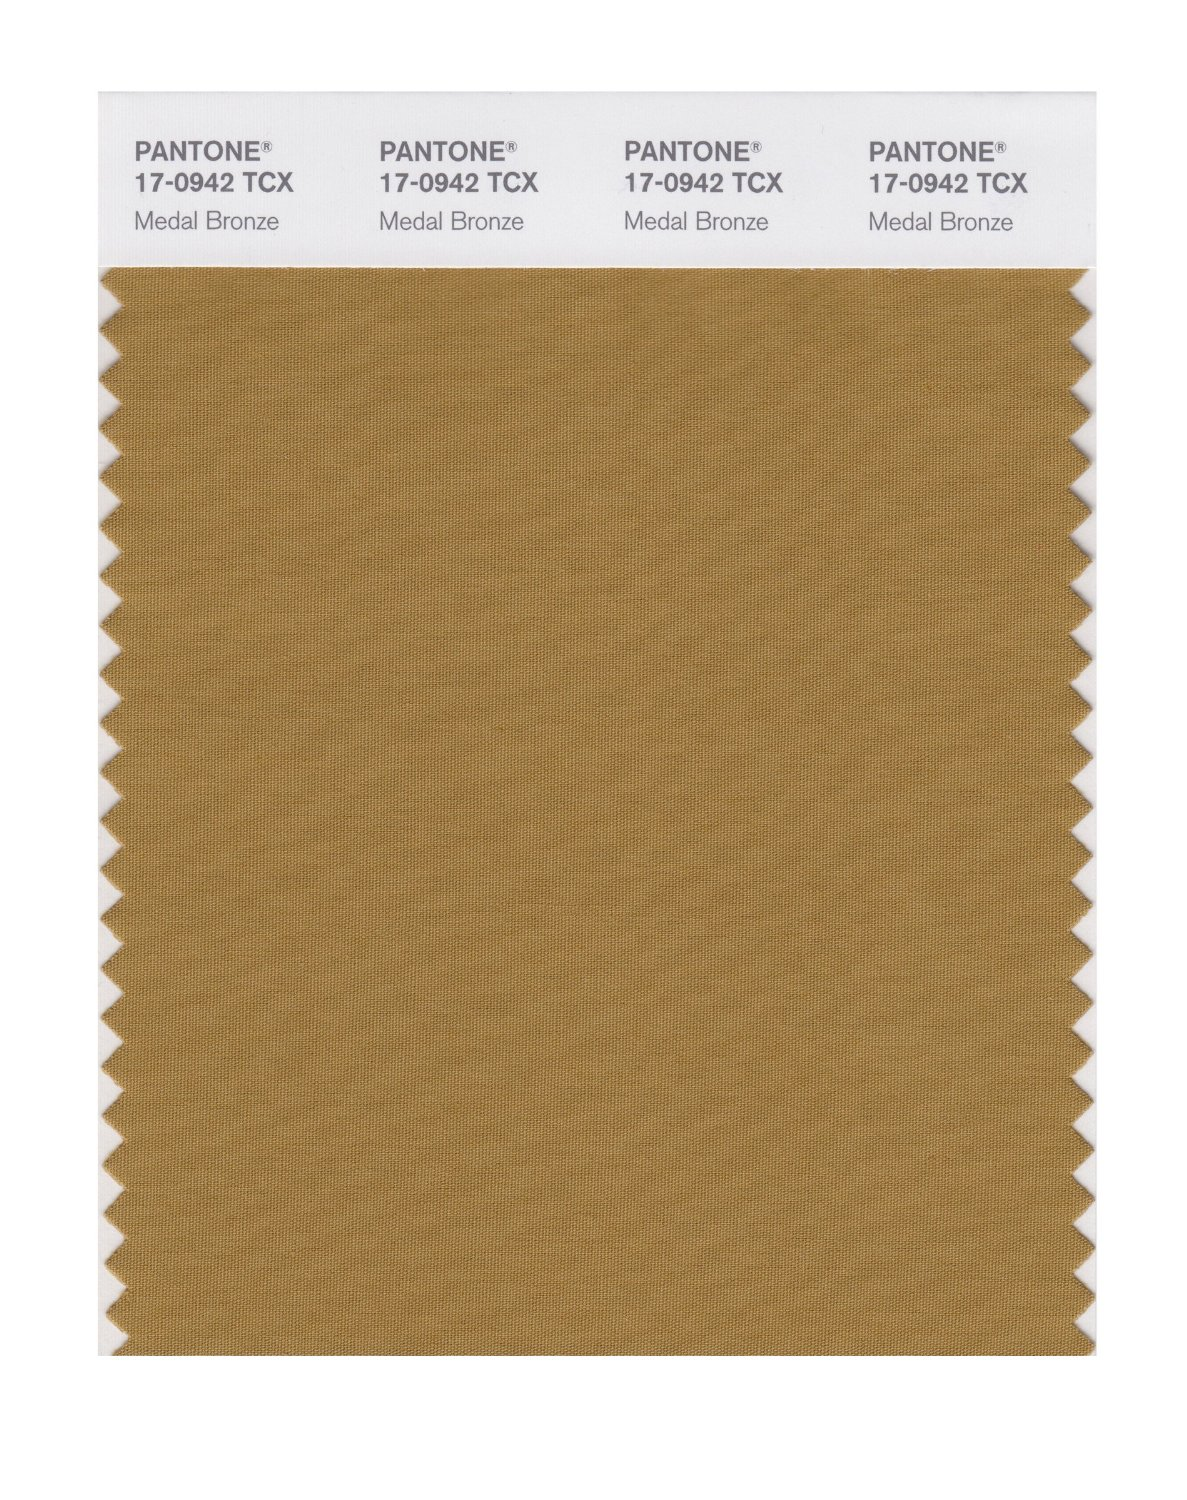 Pantone Smart Swatch 17-0942 Medal Bronze